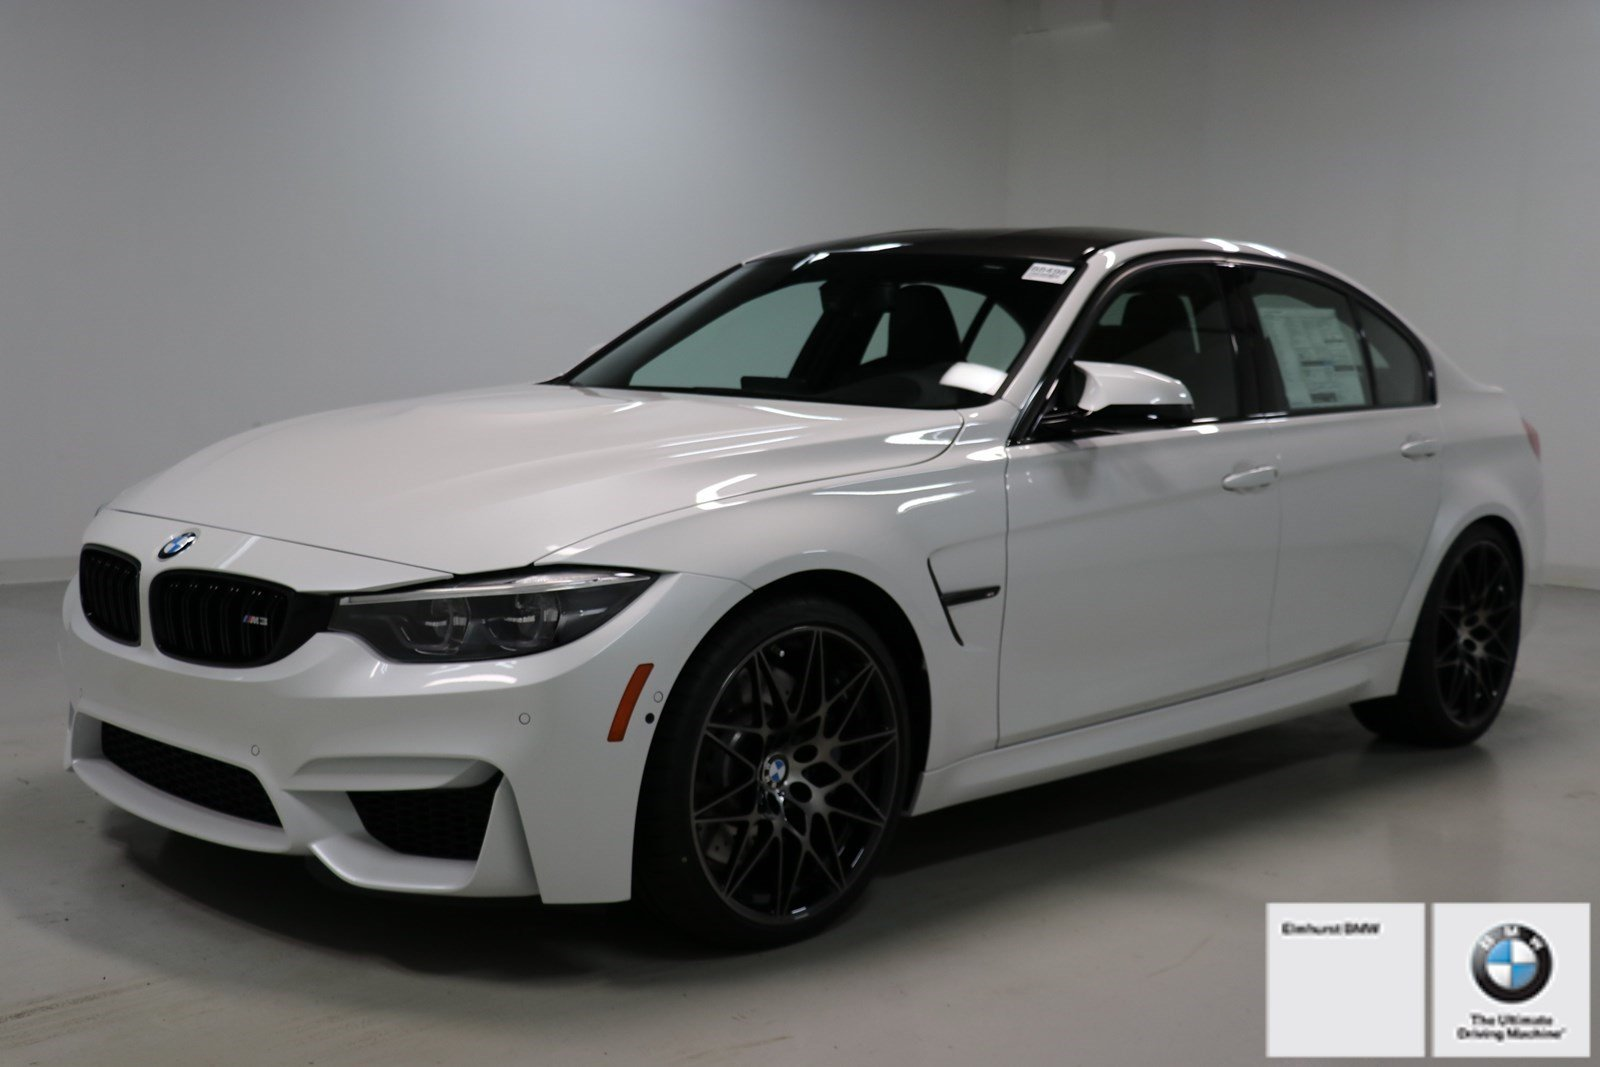 New 2018 Bmw M3 4dr Car In Elmhurst B8498 Elmhurst Bmw